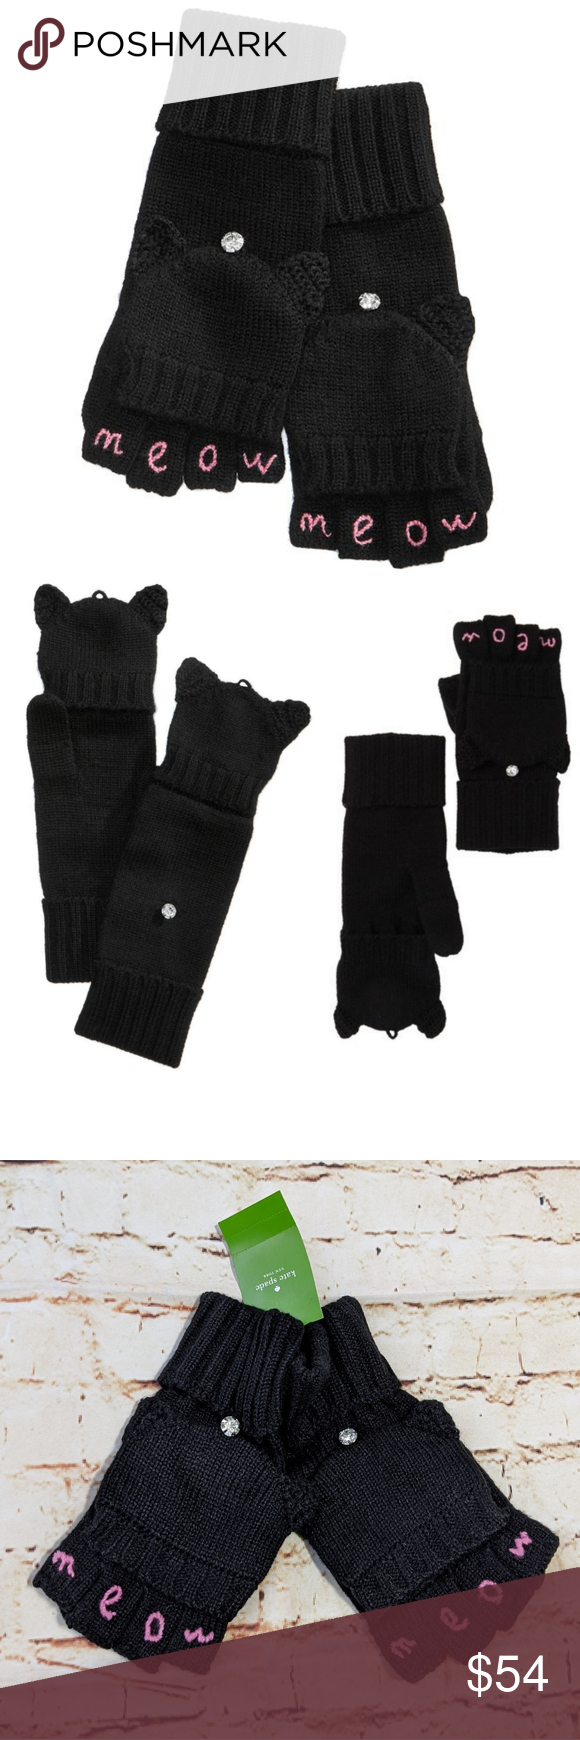 Kate Spade Meow Pop Top Mittens Gloves In 2020 Clothes Design Fashion Fashion Tips